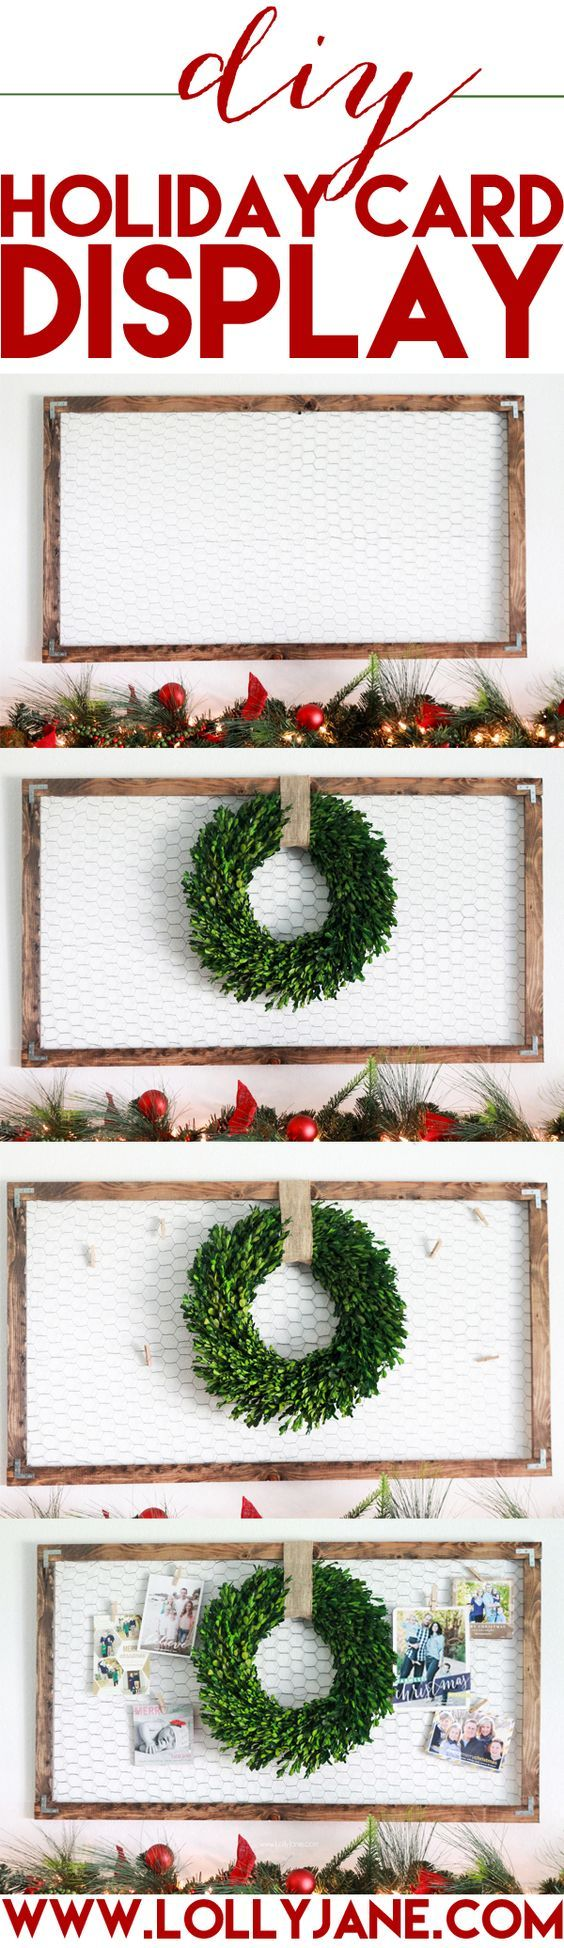 Best 25+ Christmas card display ideas on Pinterest | Christmas ...